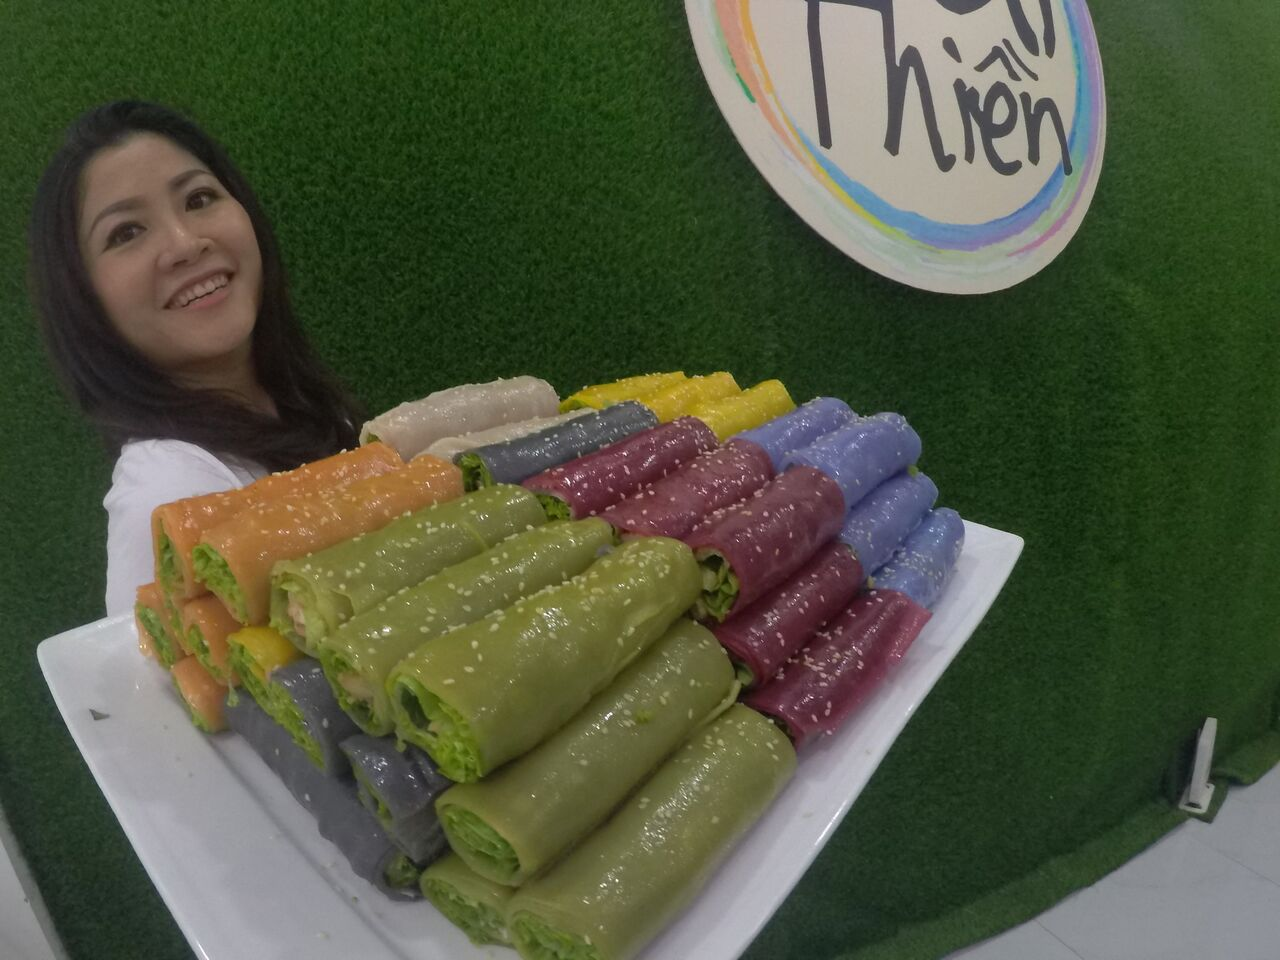 Nguyen Thi Thanh Nguyen showcases her signature colorful pho cuon (pho rolls) in a photo provided to Tuoi Tre News.